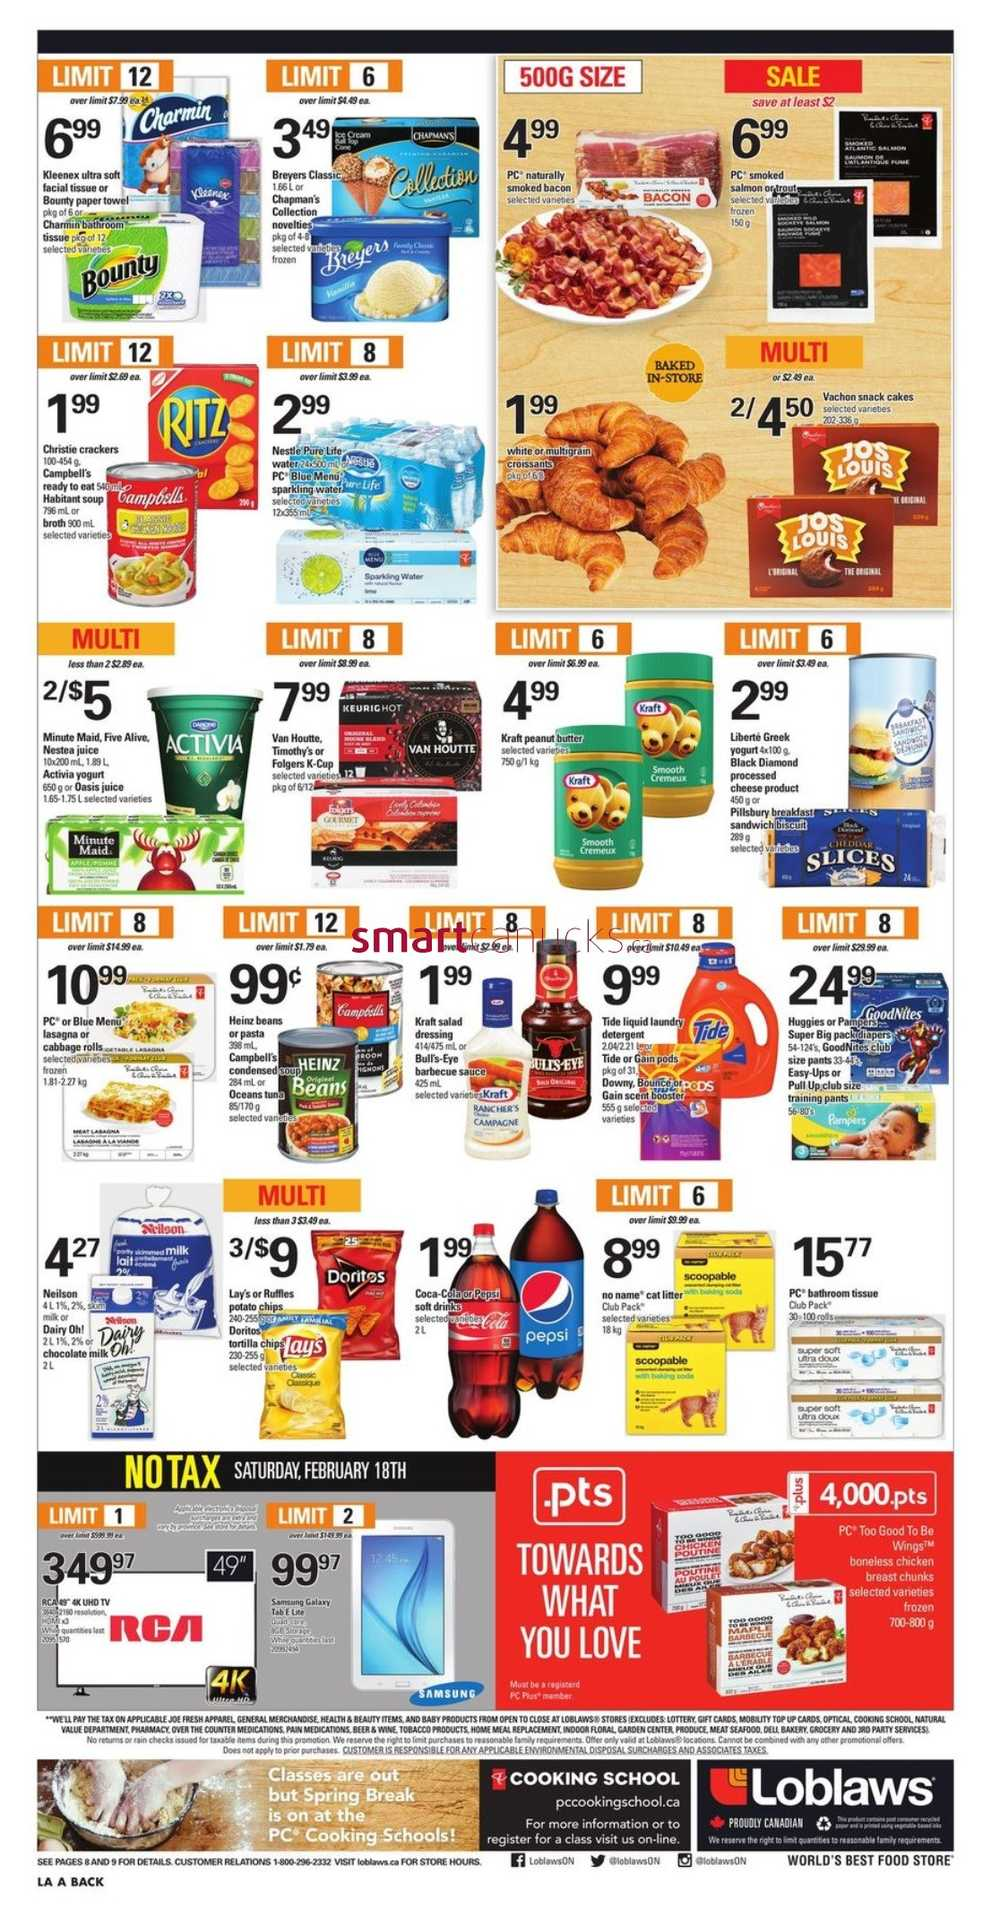 Sales coupons for stores